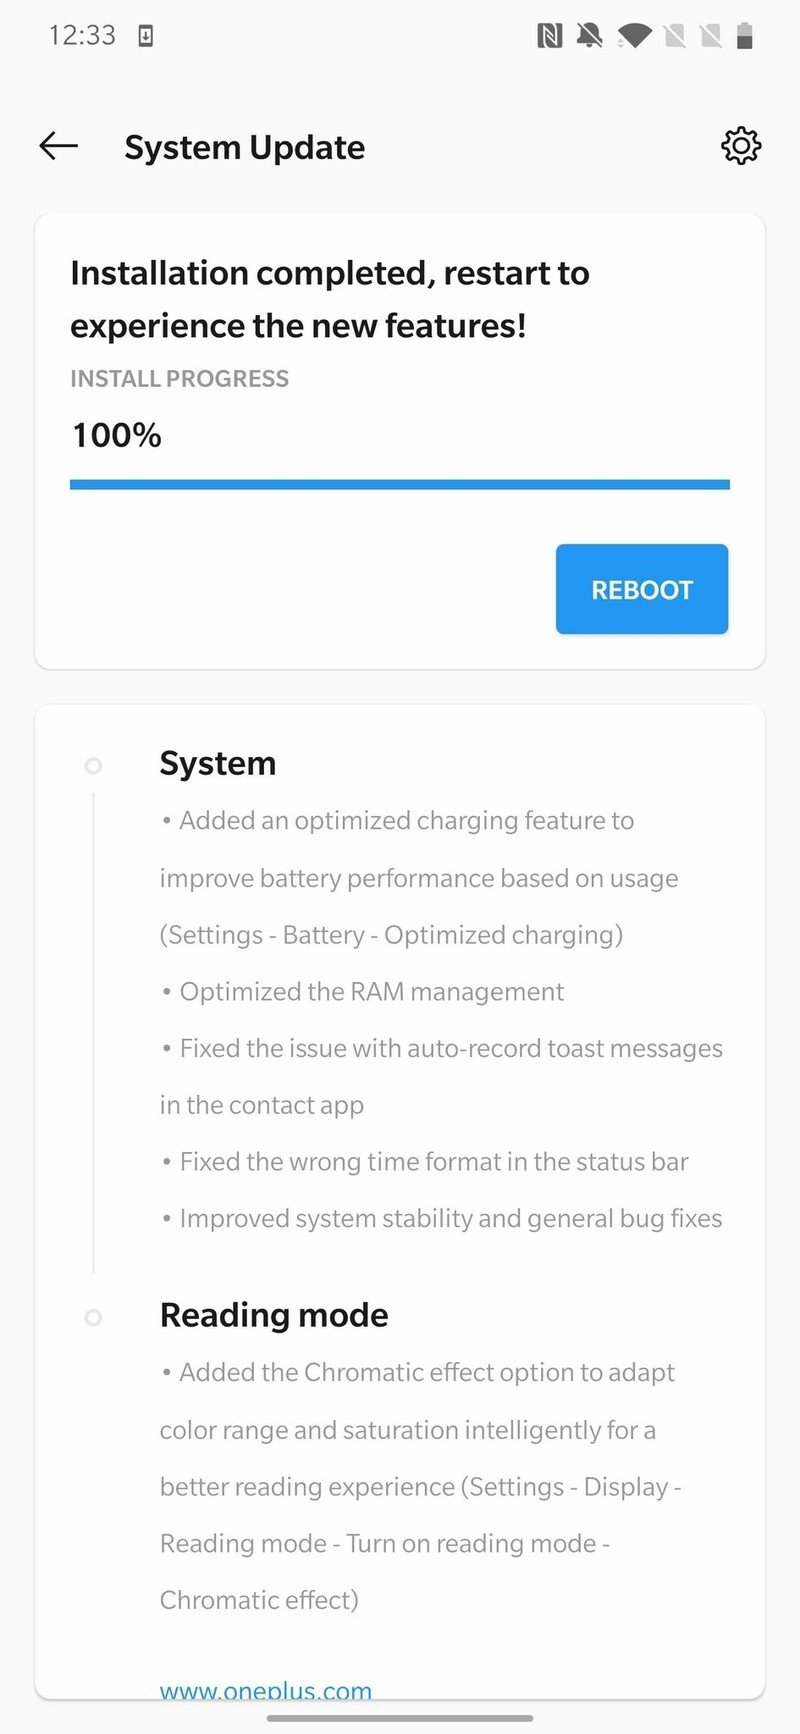 oneplus-how-to-update-software-7.jpg?ito